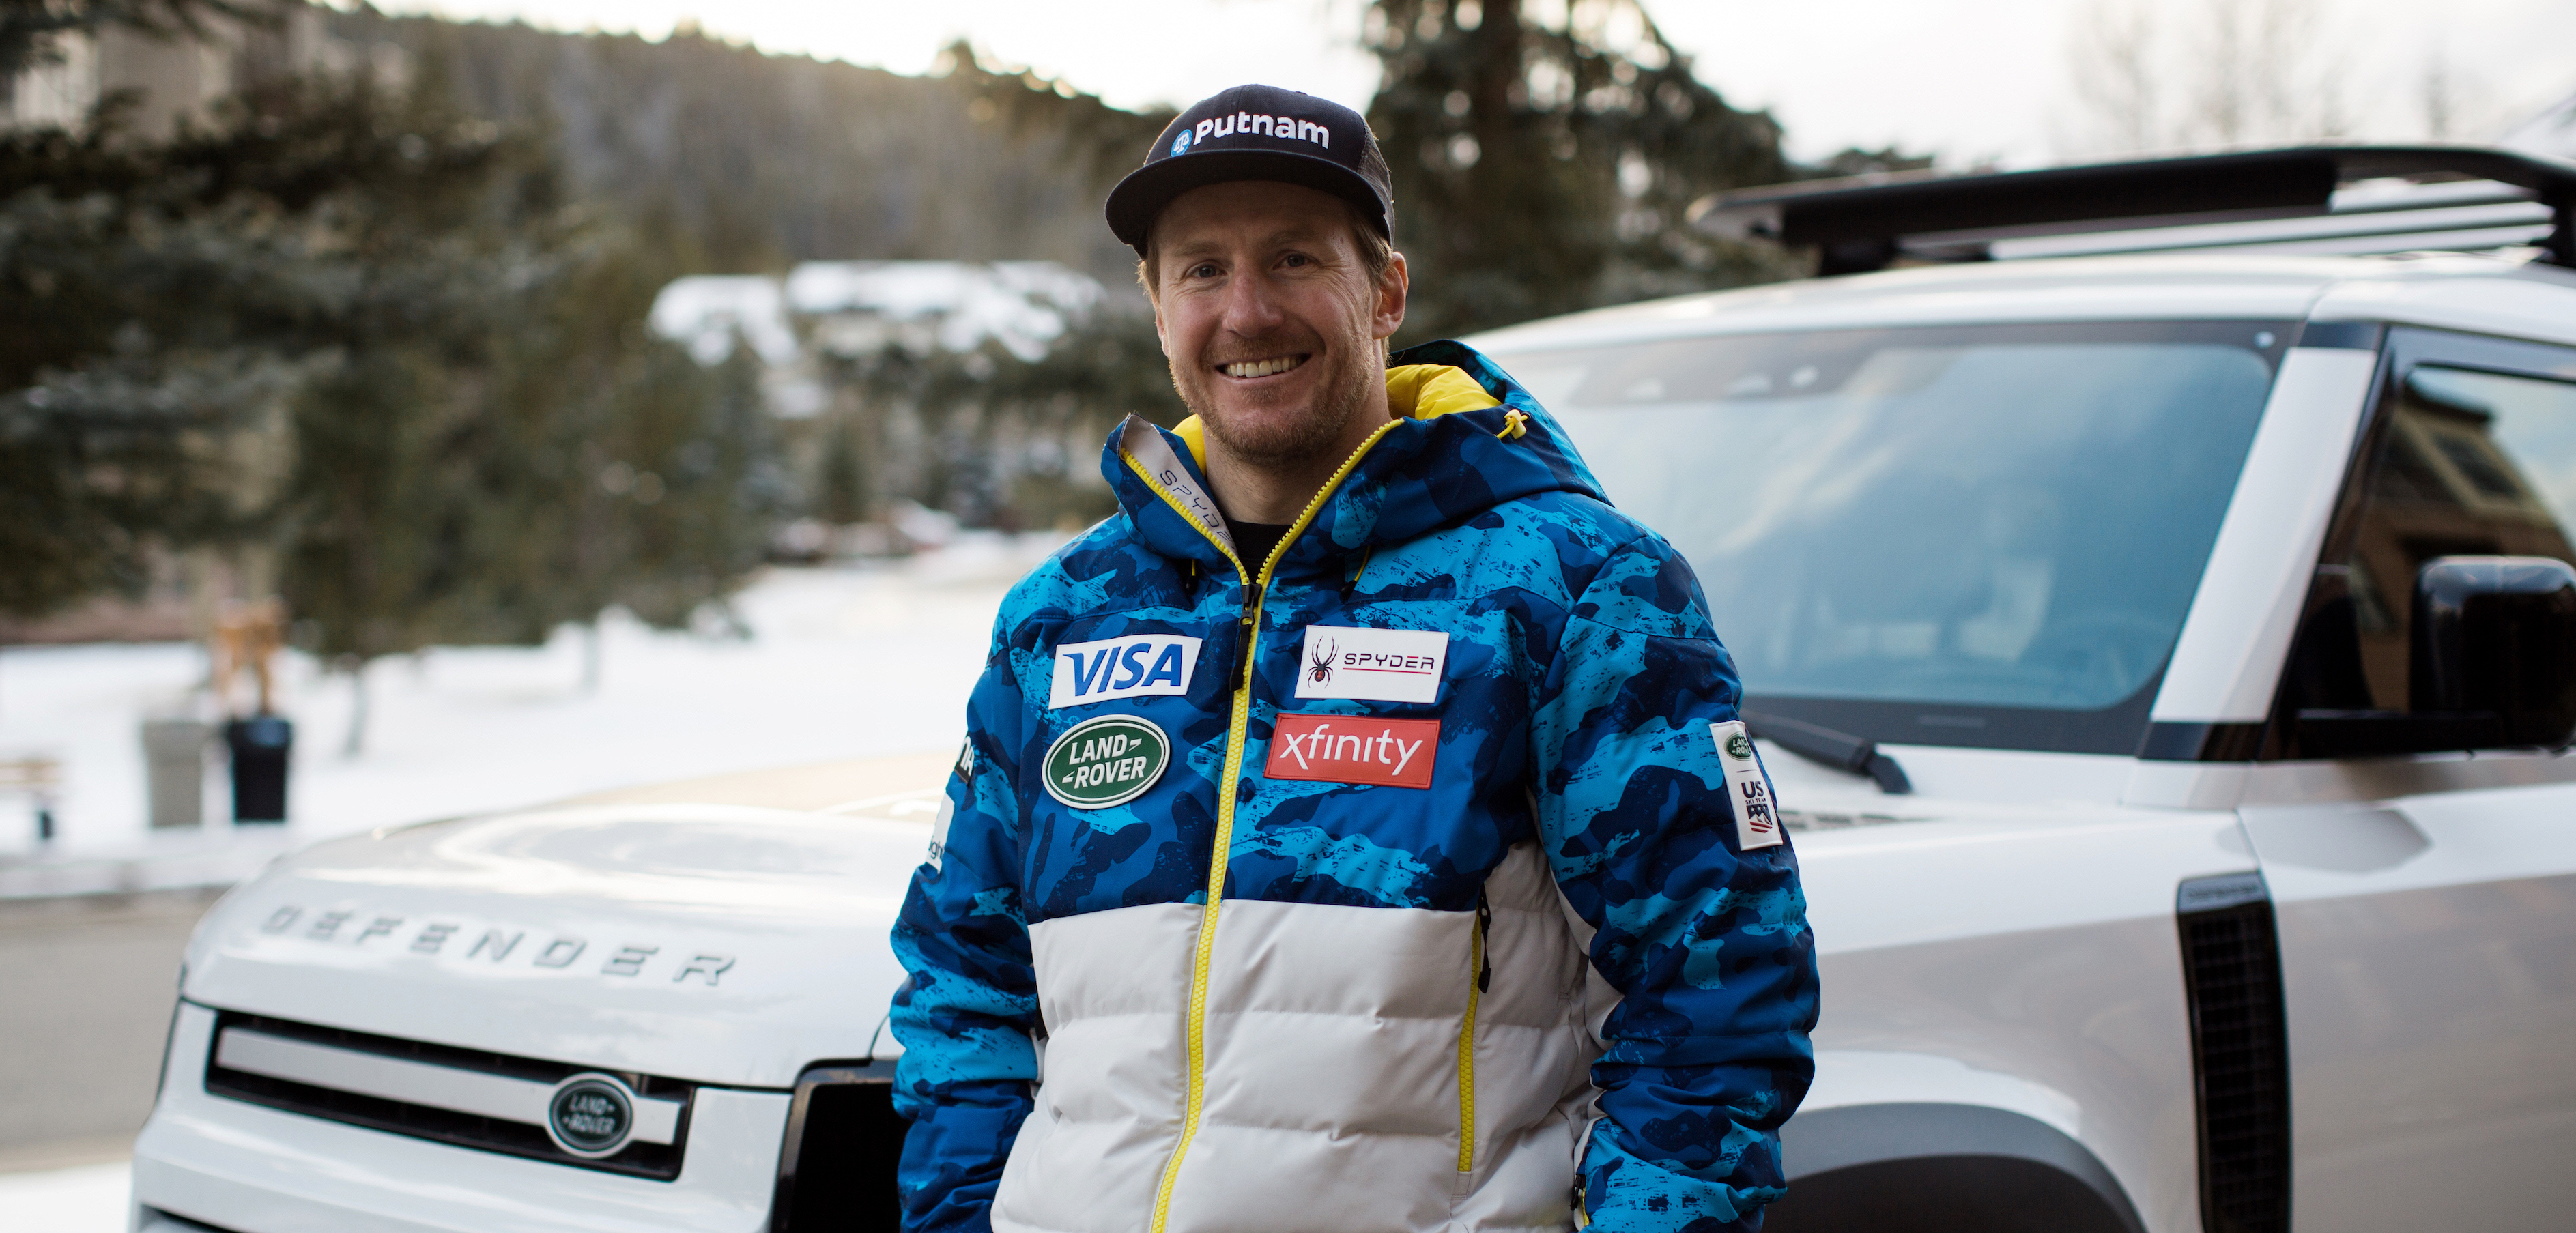 Ted Ligety Retirement